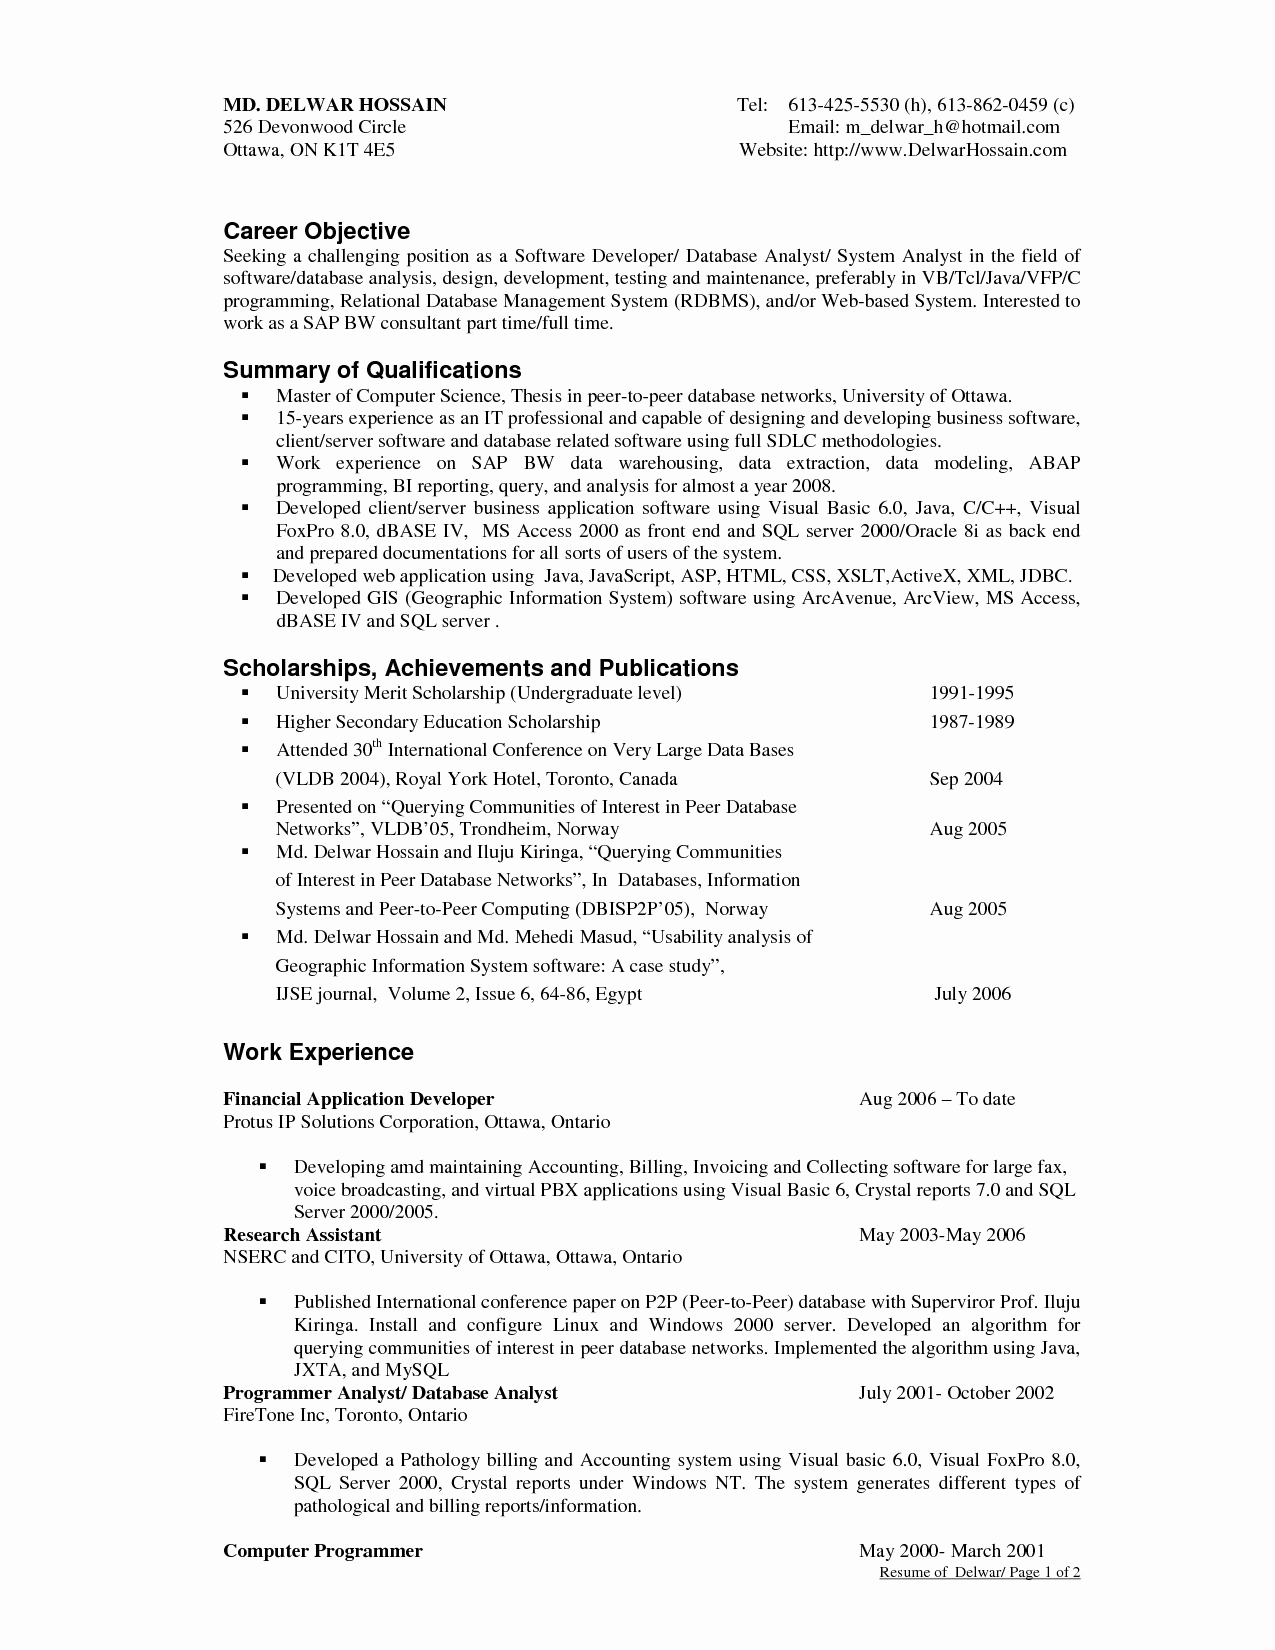 Objective Resume Samples Skills In A Resume Career